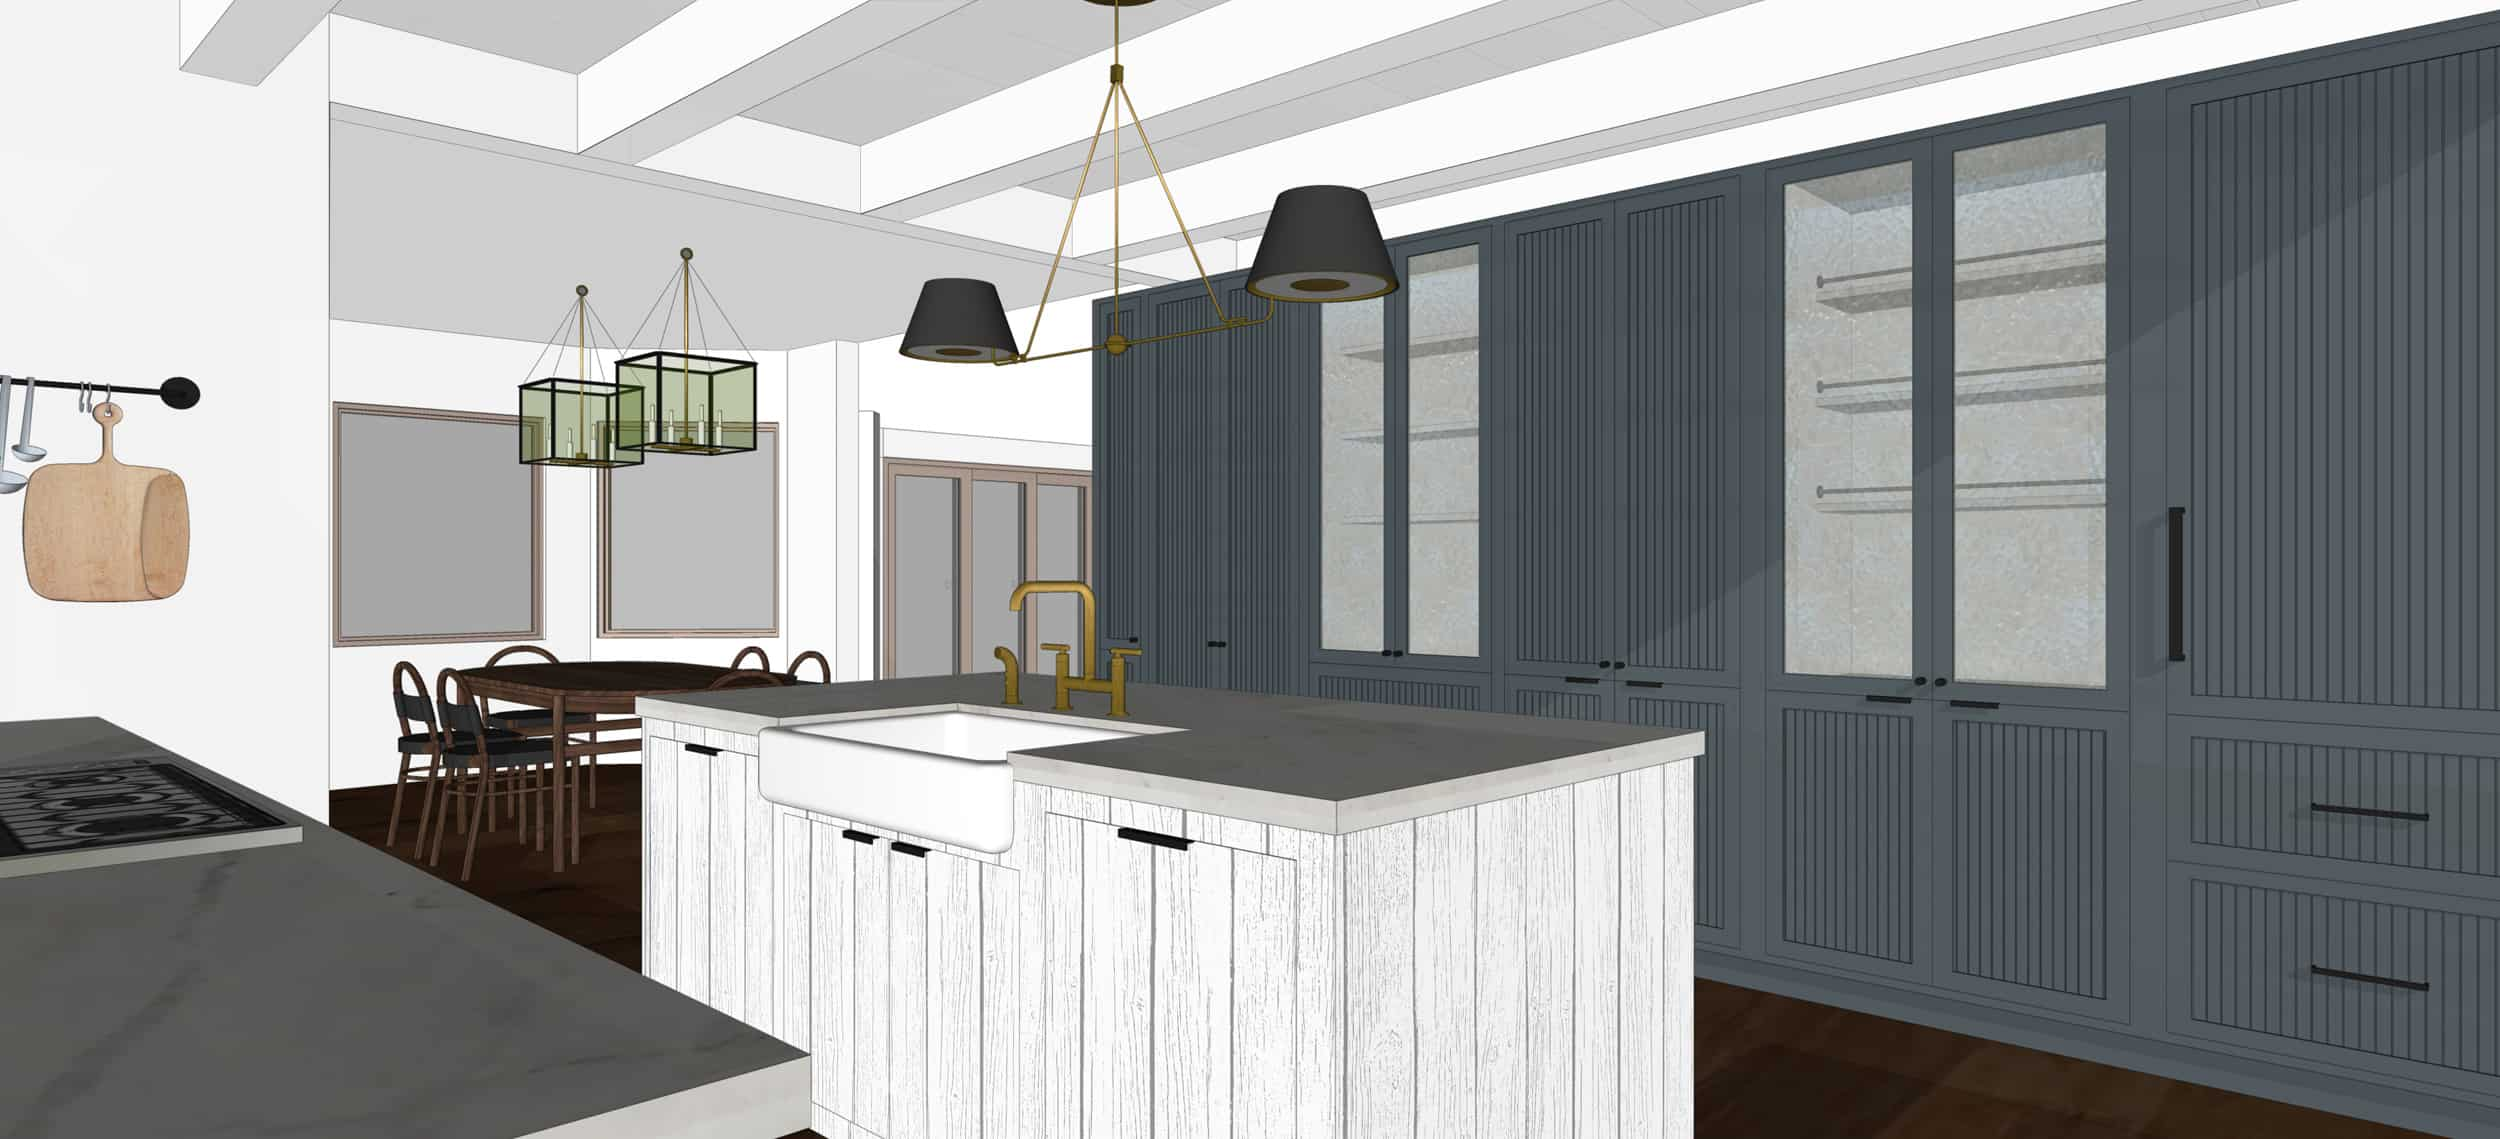 Emily Henderson Mountain Fixer Upper I Design You Decide Kitchen Render 04 6.20.18